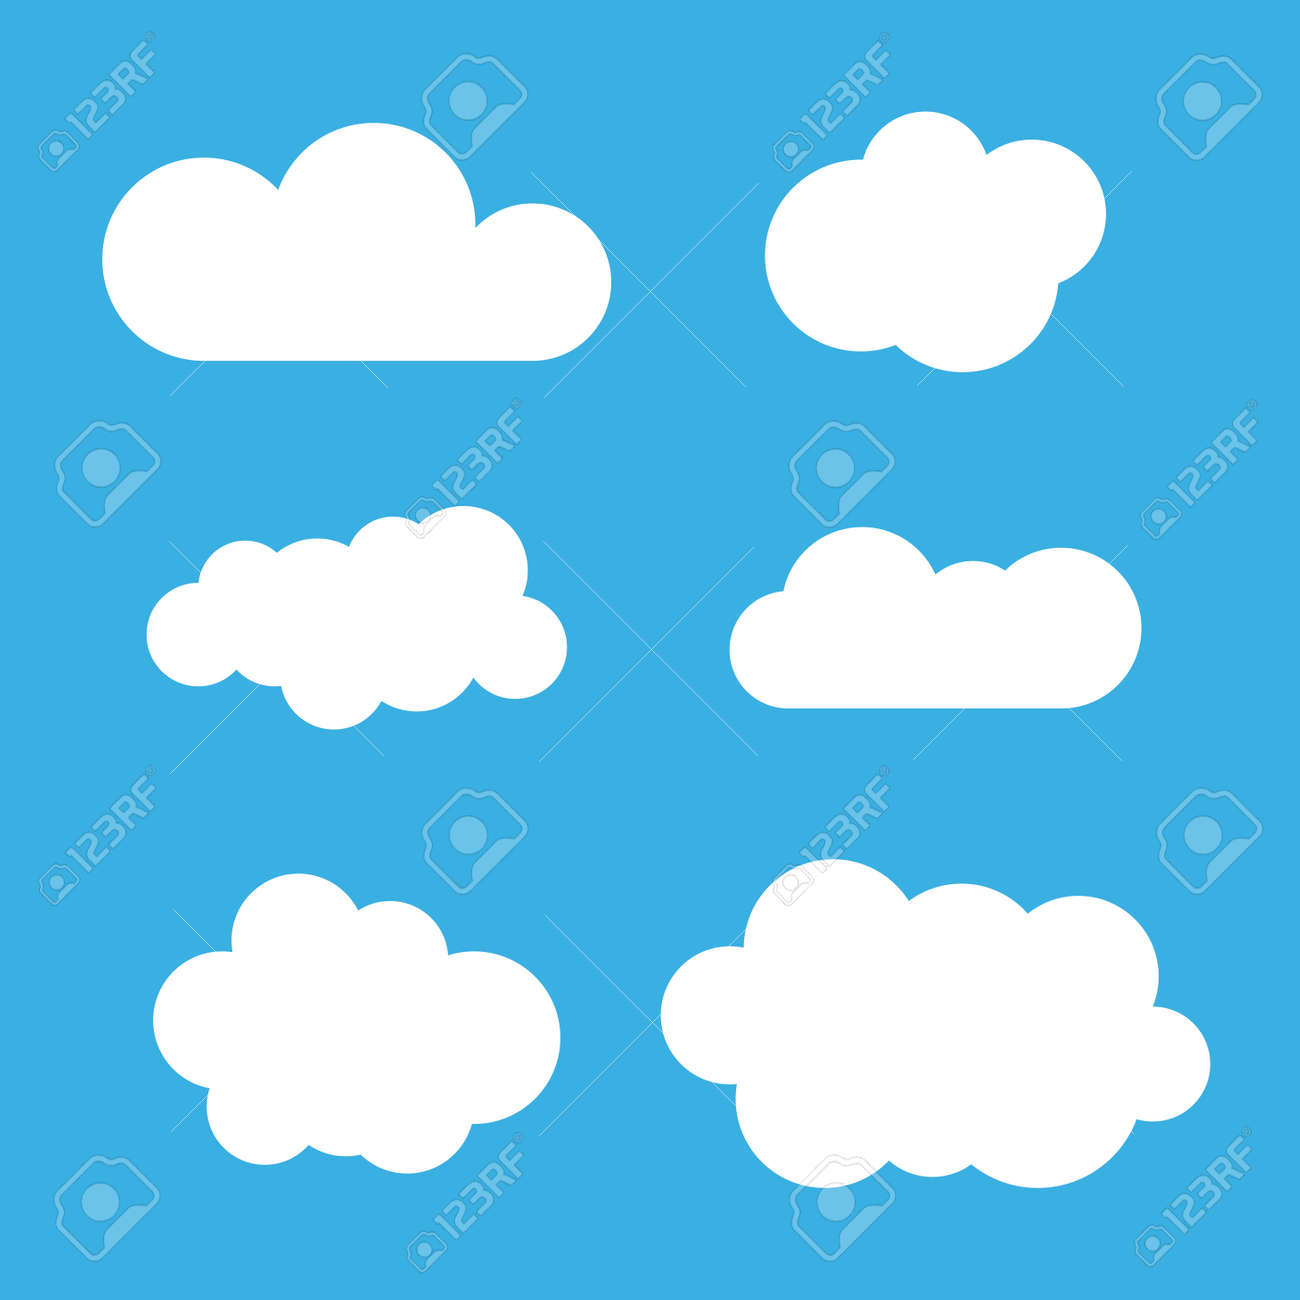 Cloud Icons Set White Outline Isolated On Blue Sky Background Collection Template Elements Design